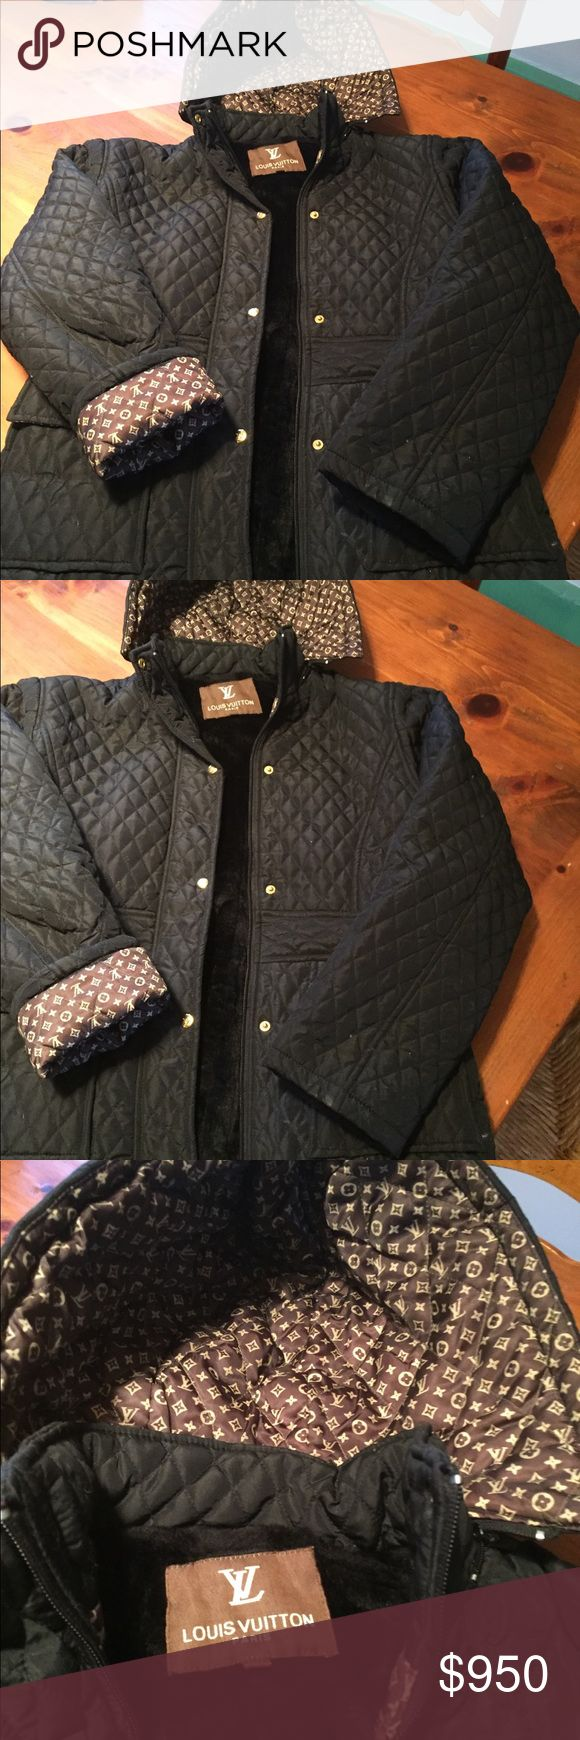 LOUIS VUITTON quilted jacket size M almost new Hi fashion